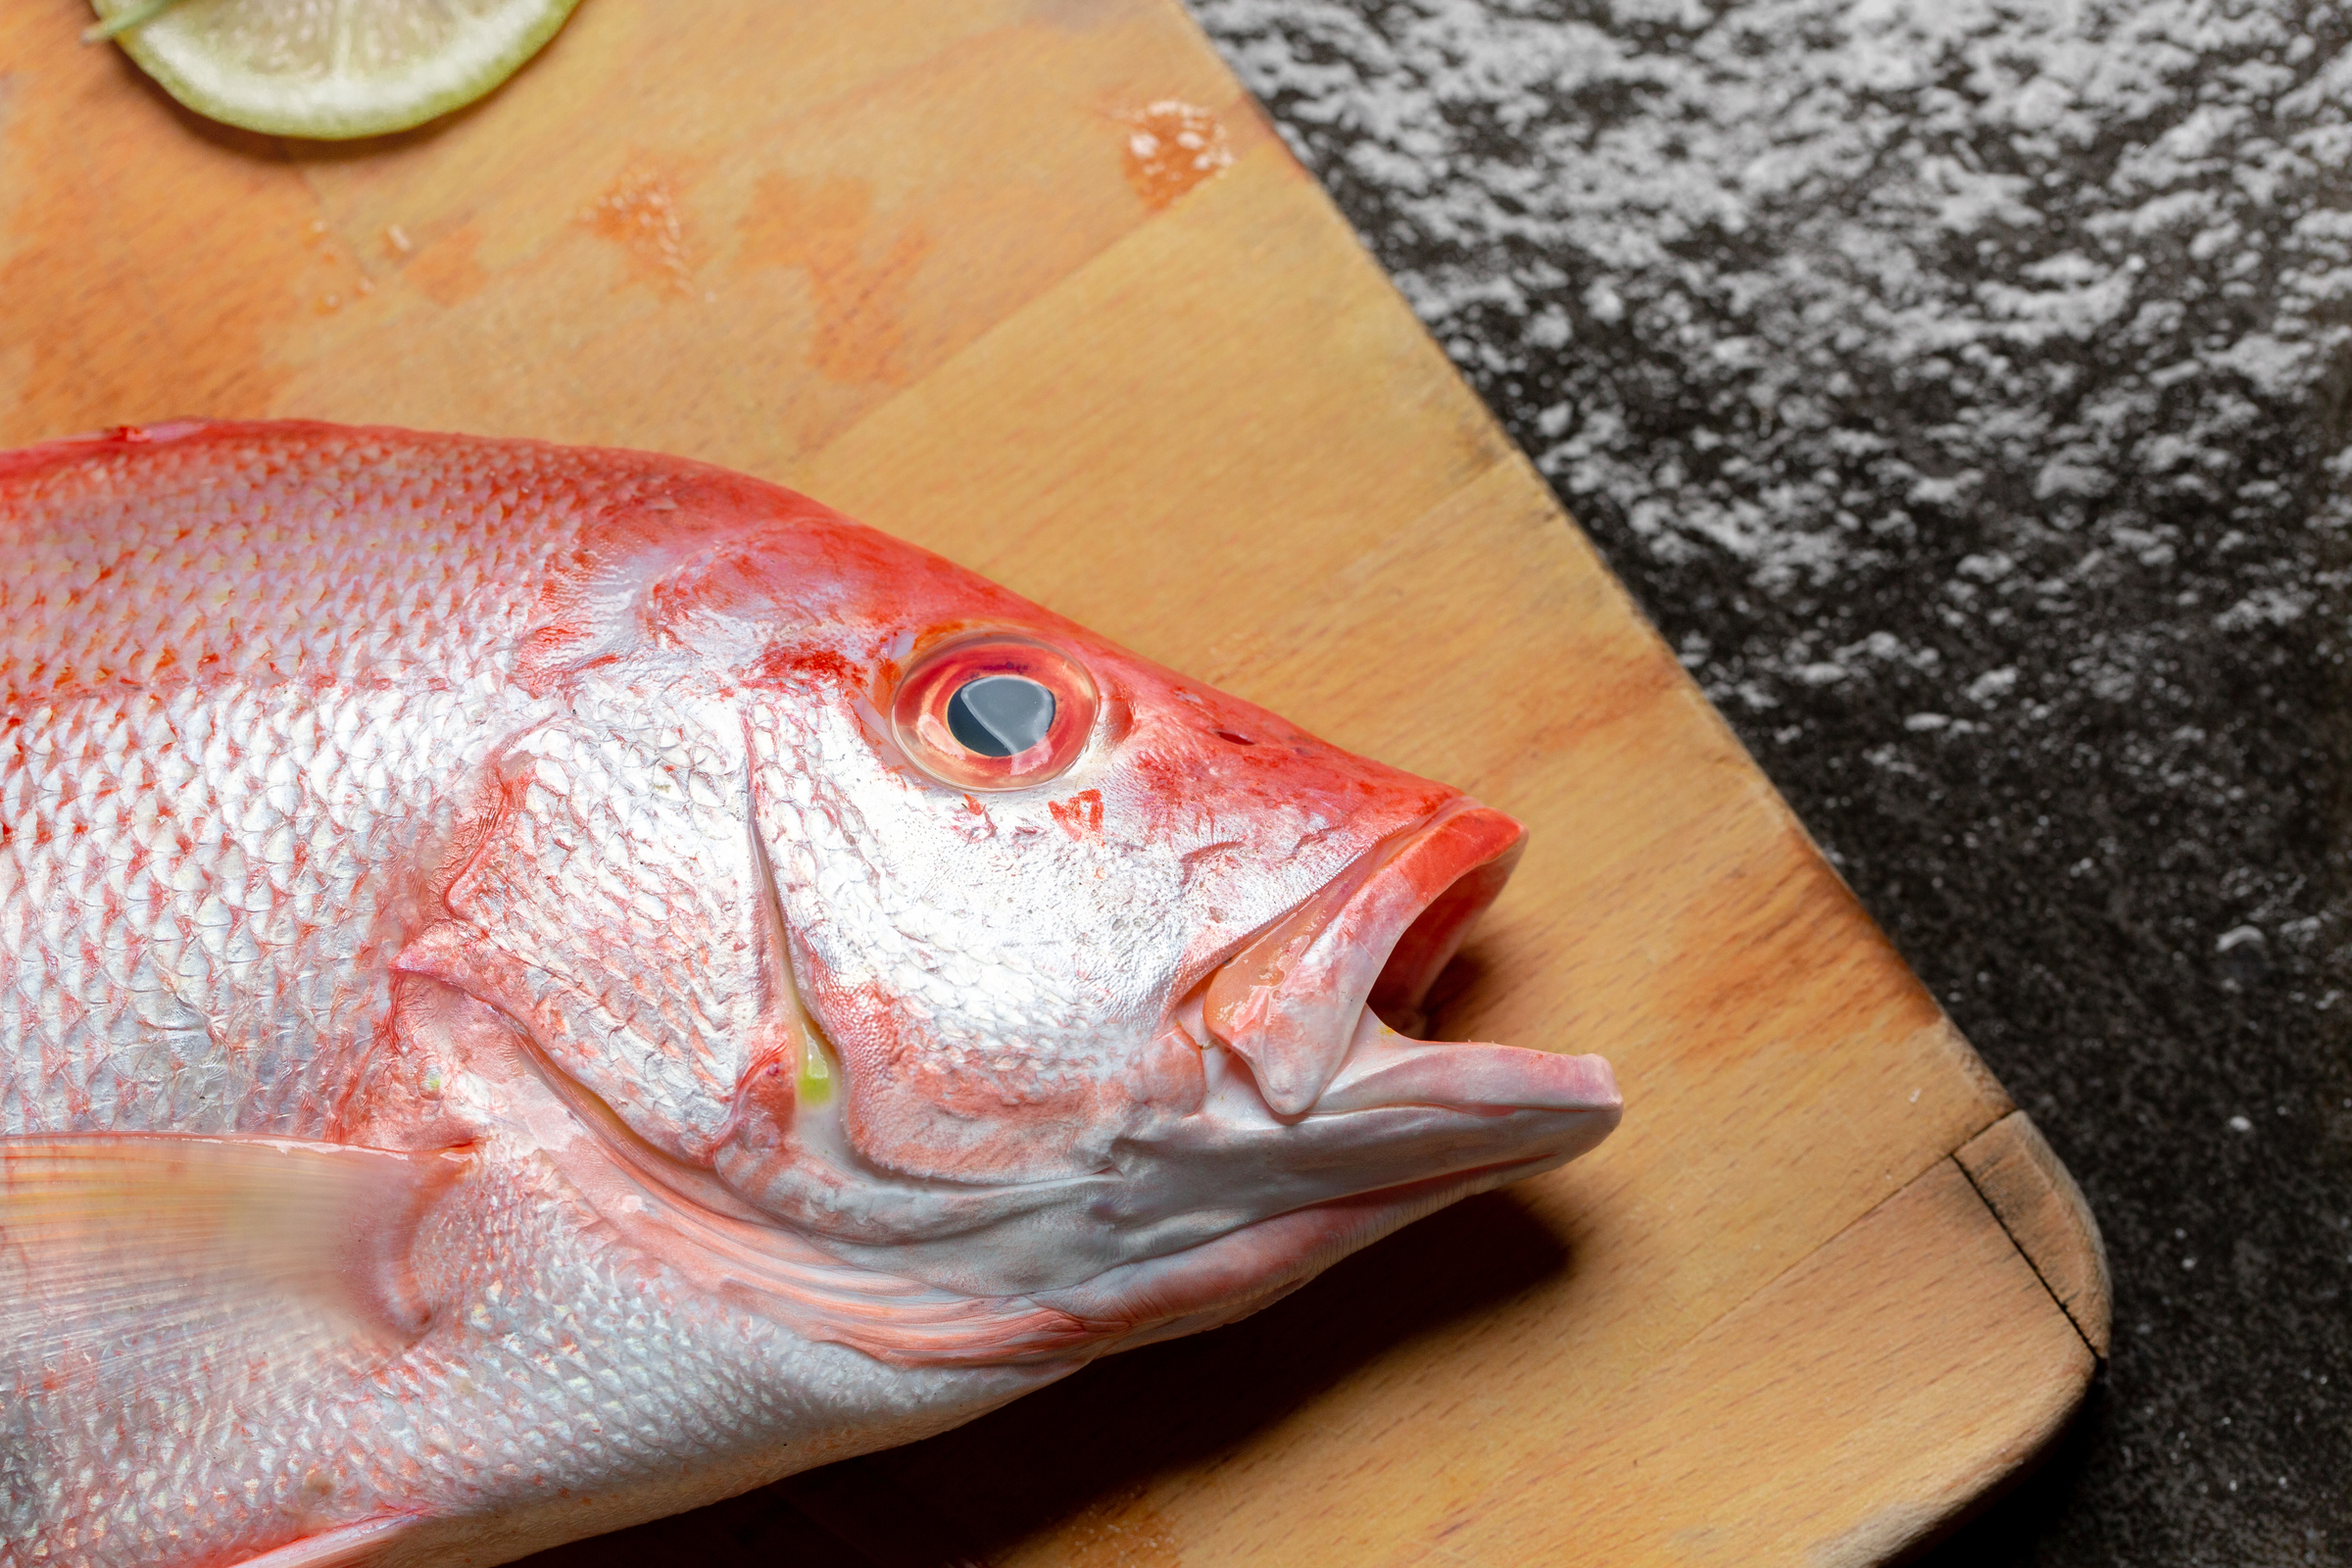 Harvest & Catch | PRODUCT CATEGORY - Whole Fish